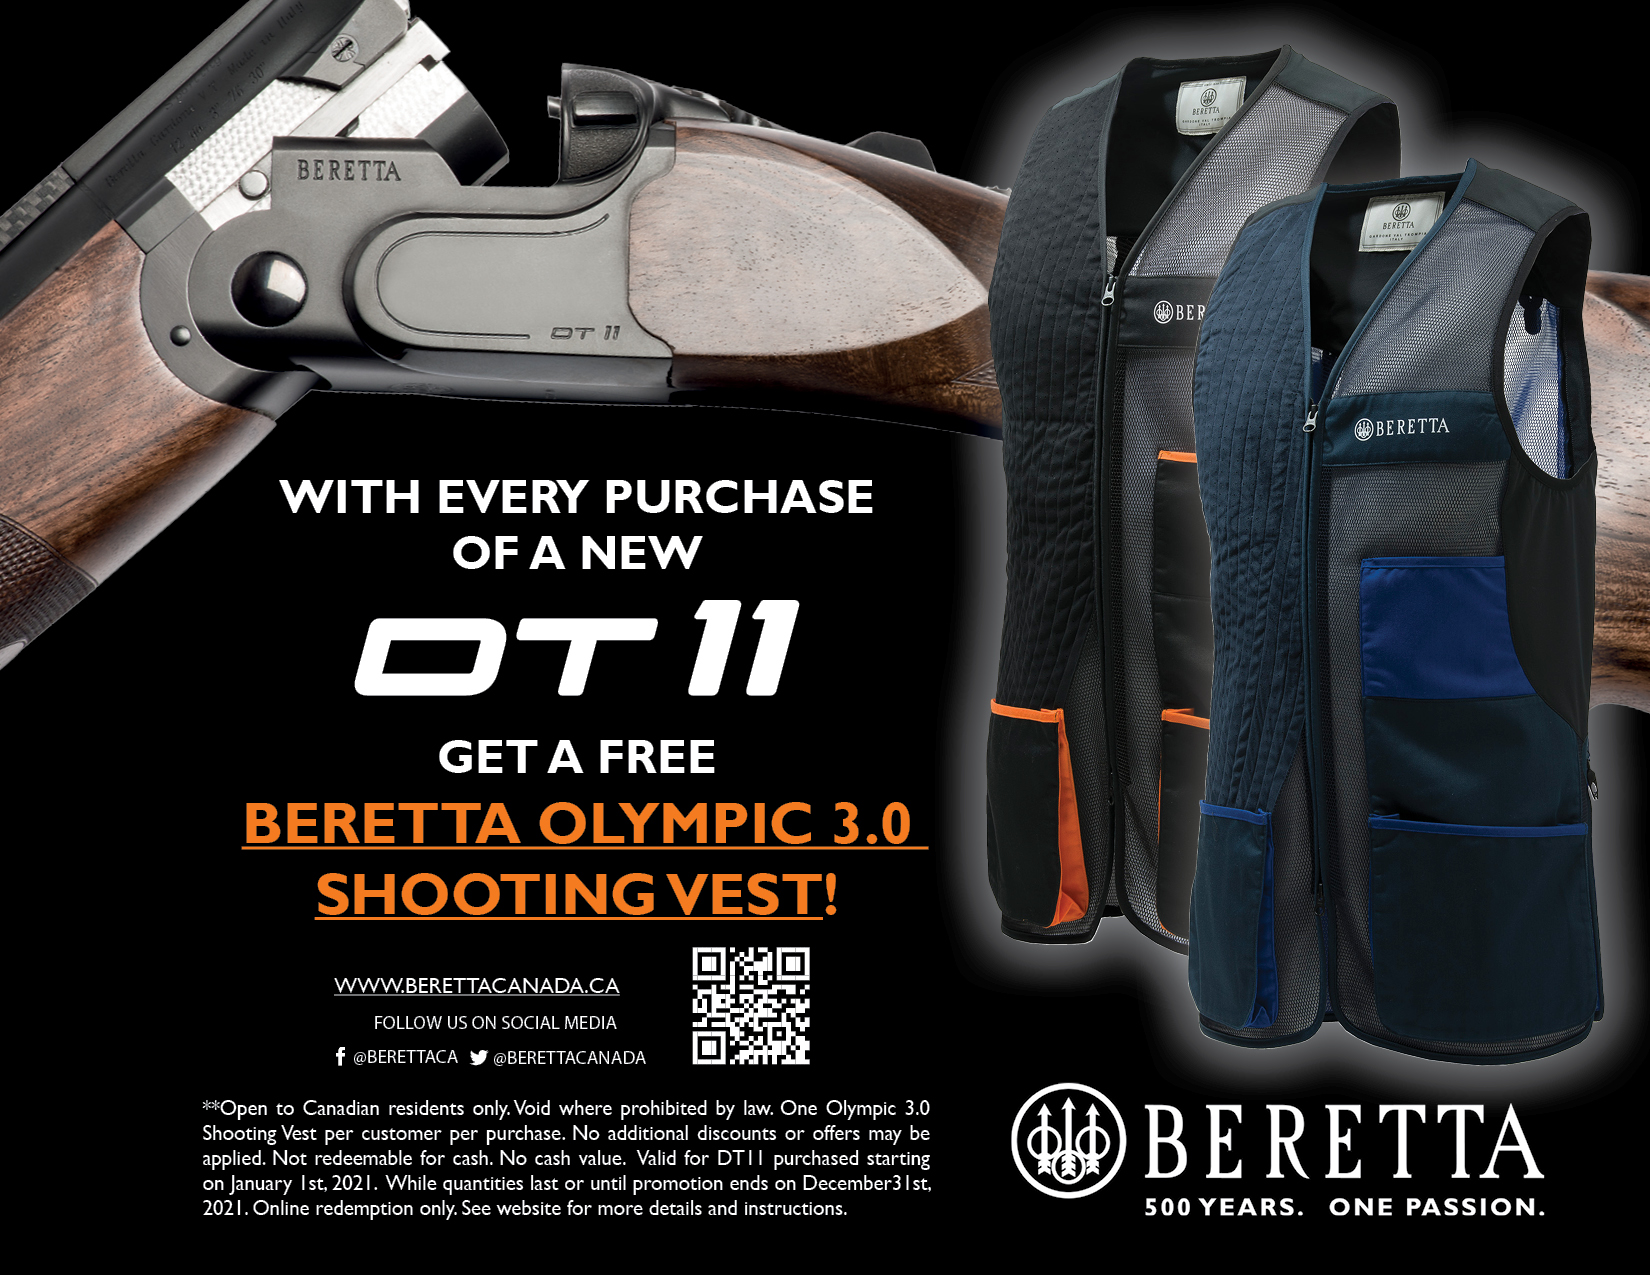 Beretta DT11 Promotion Poster